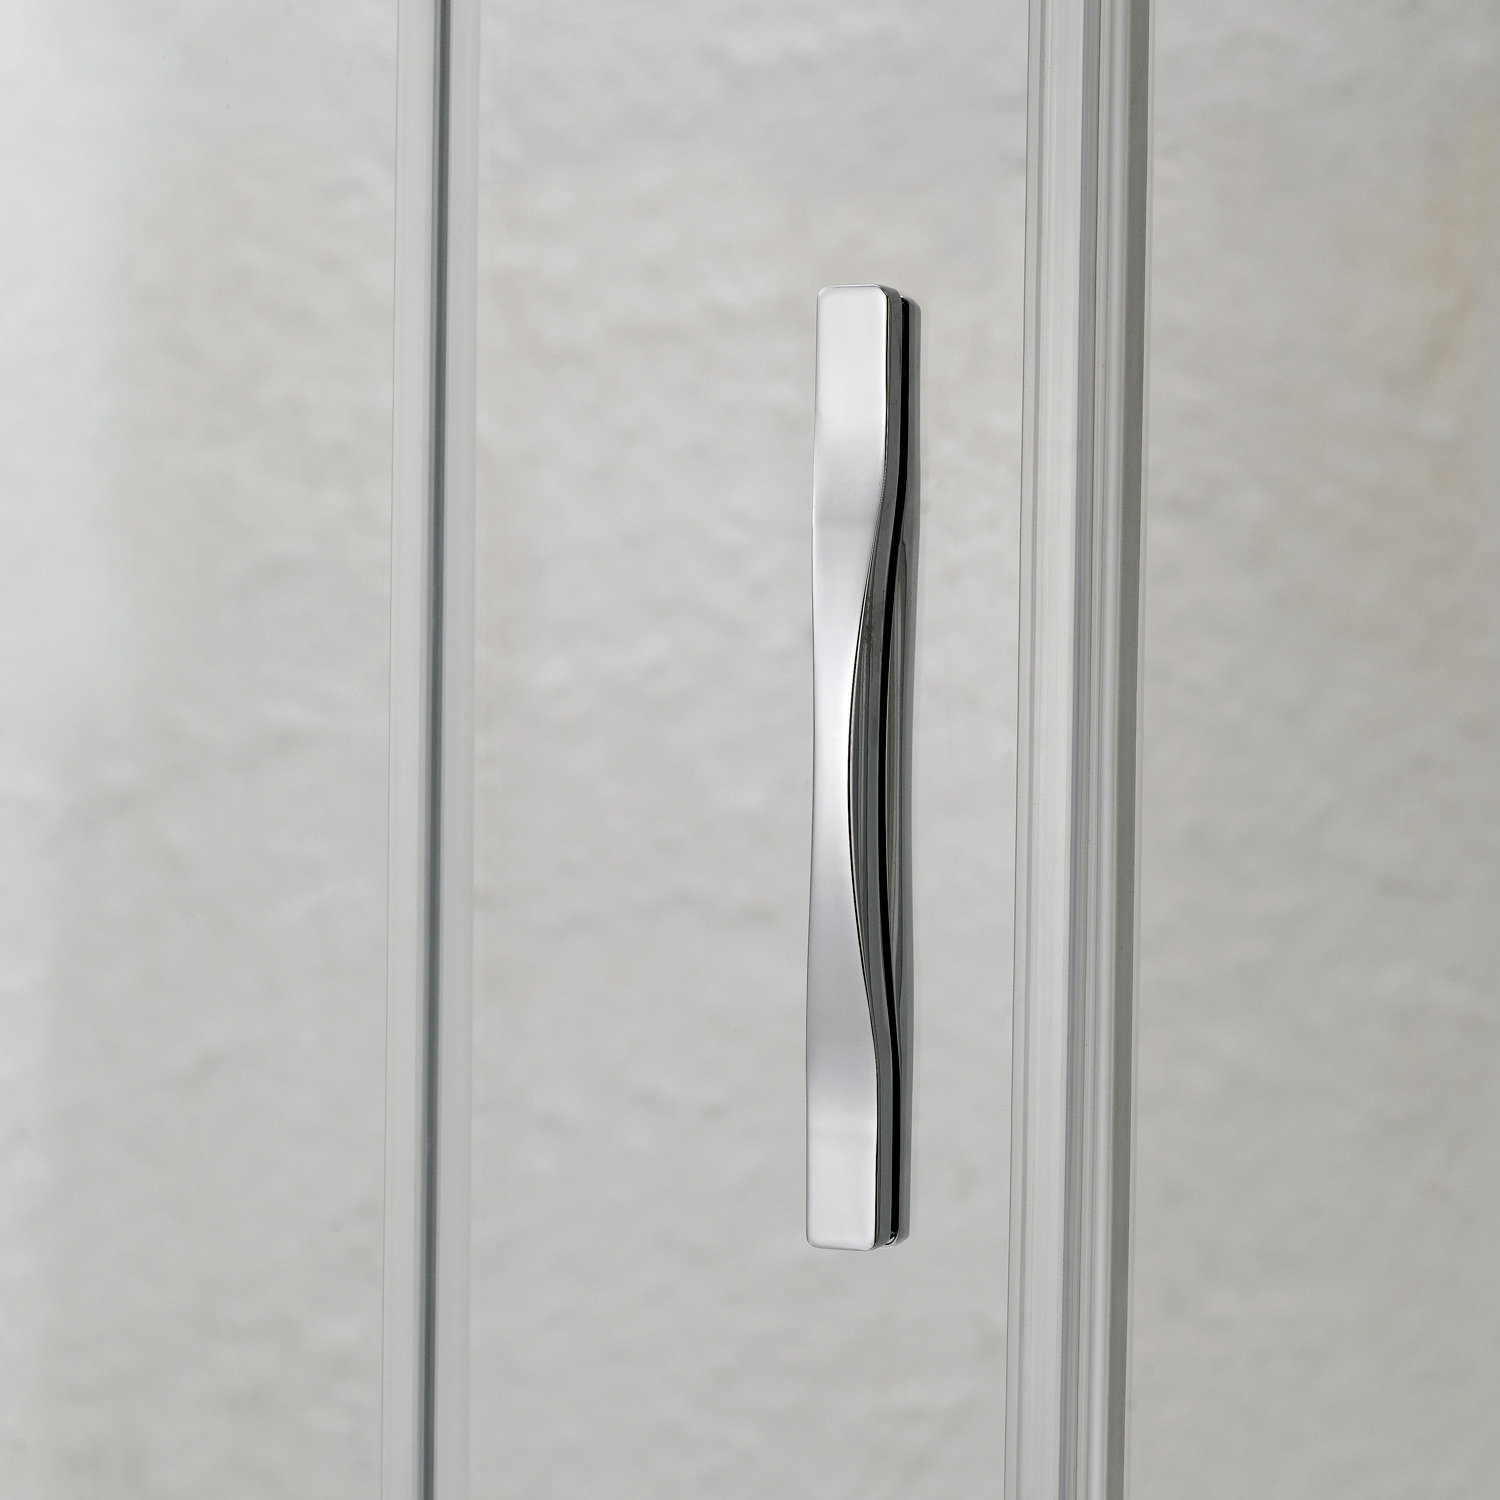 niche-shower-door-two-sliding-doors-pr018-4_1543847874_825